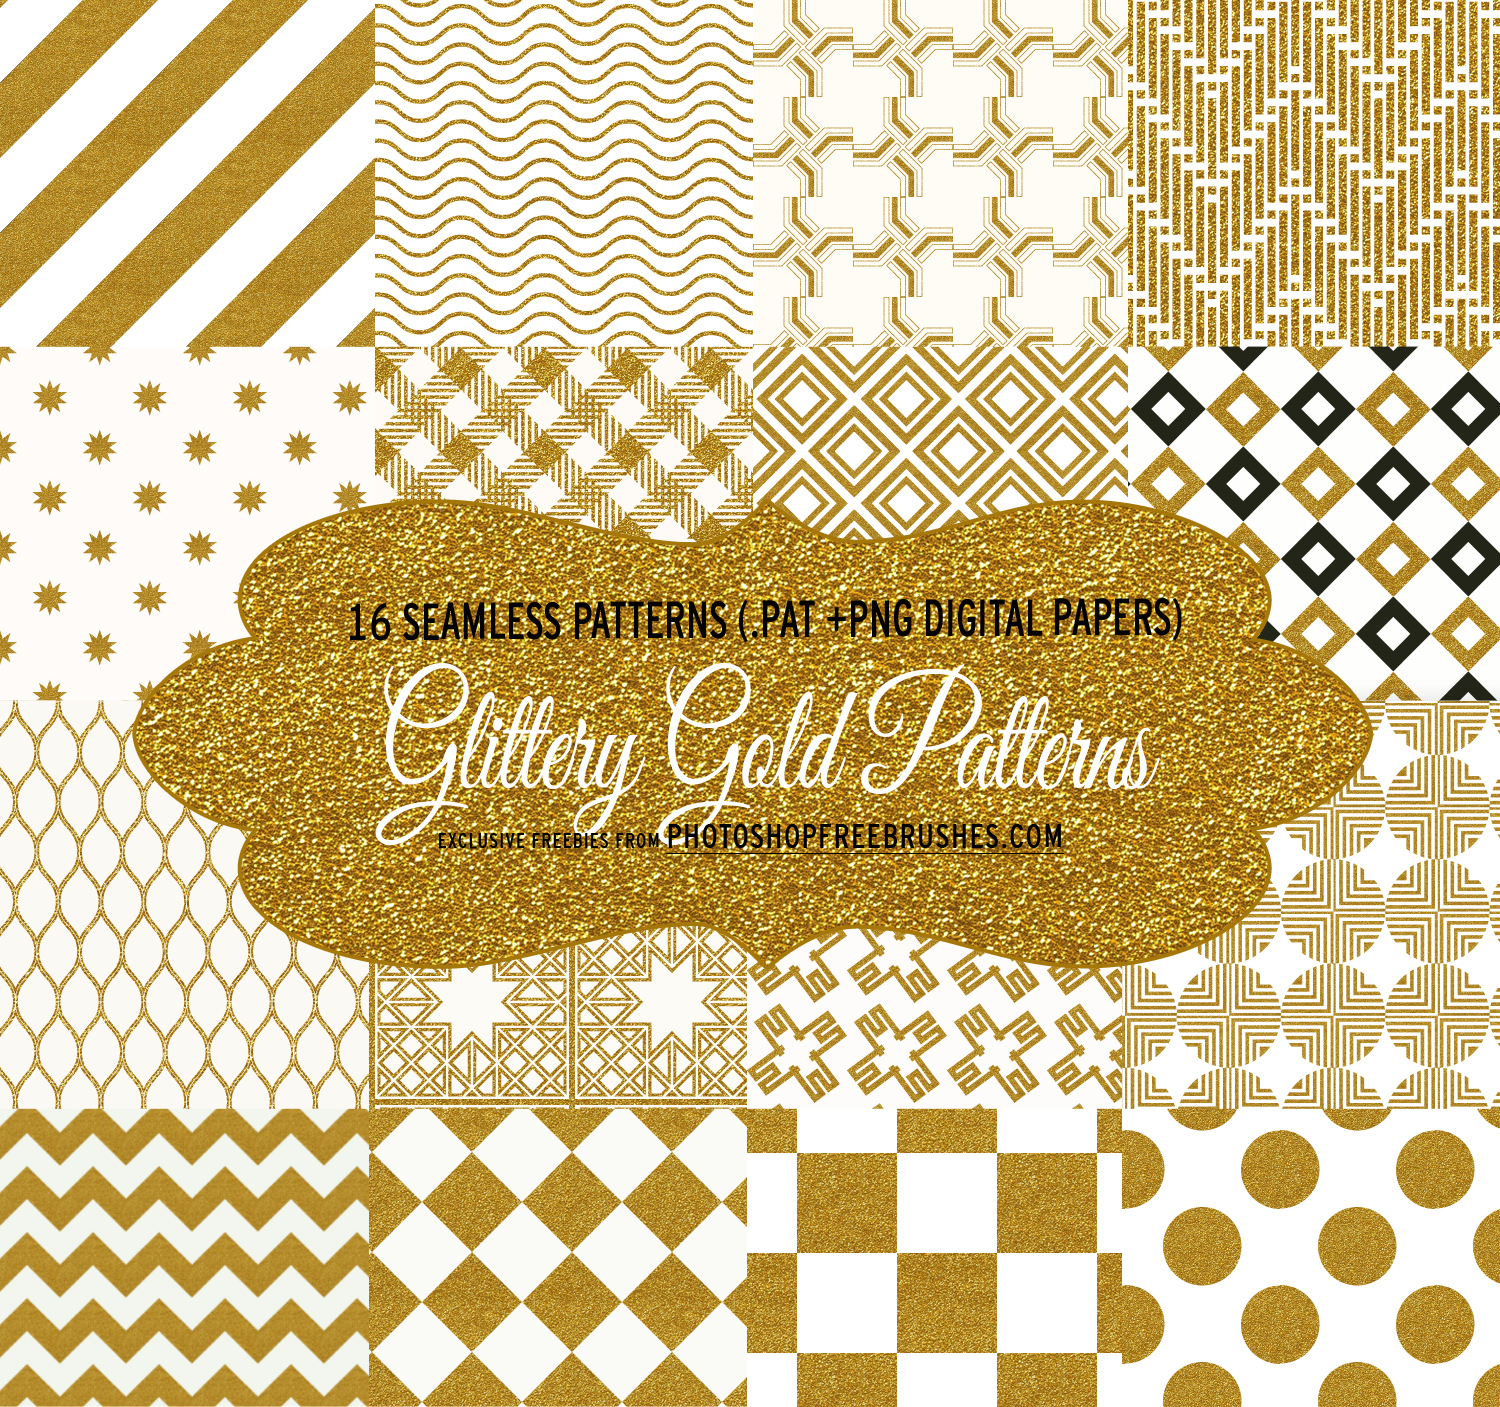 16 Glittery Gold Geometric Patterns and Backgrounds